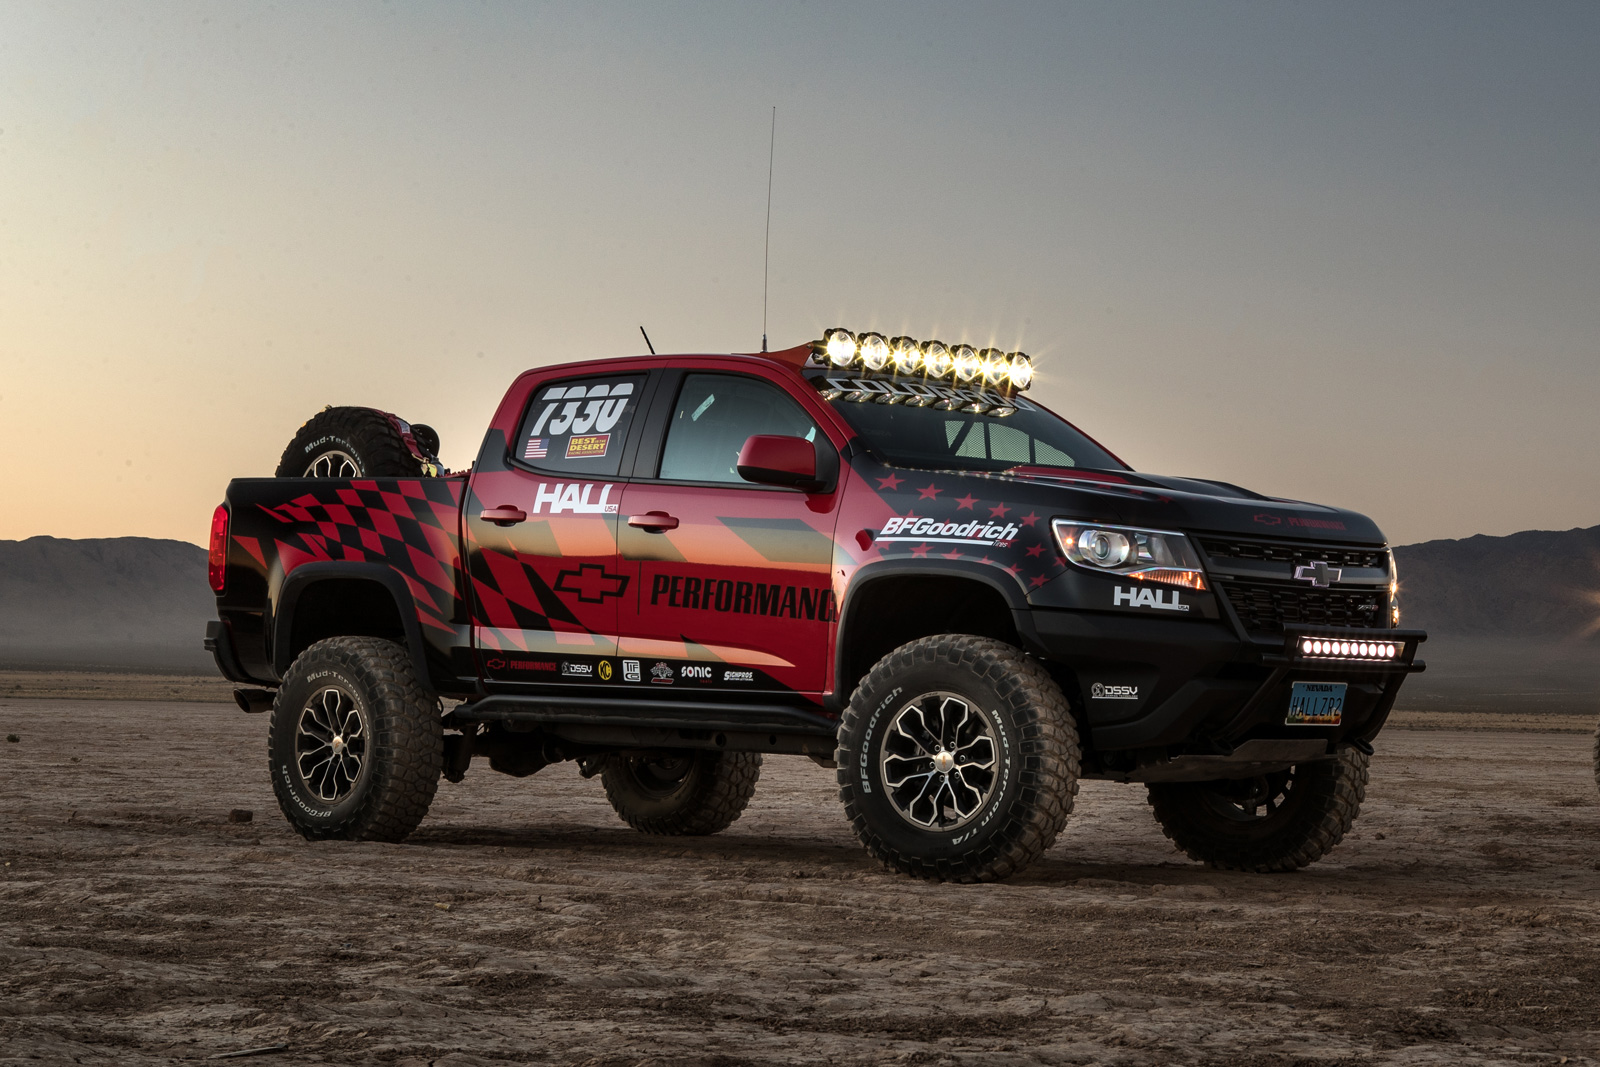 Hall racing s chevrolet colorado zr2 hall racing s chevrolet colorado zr2